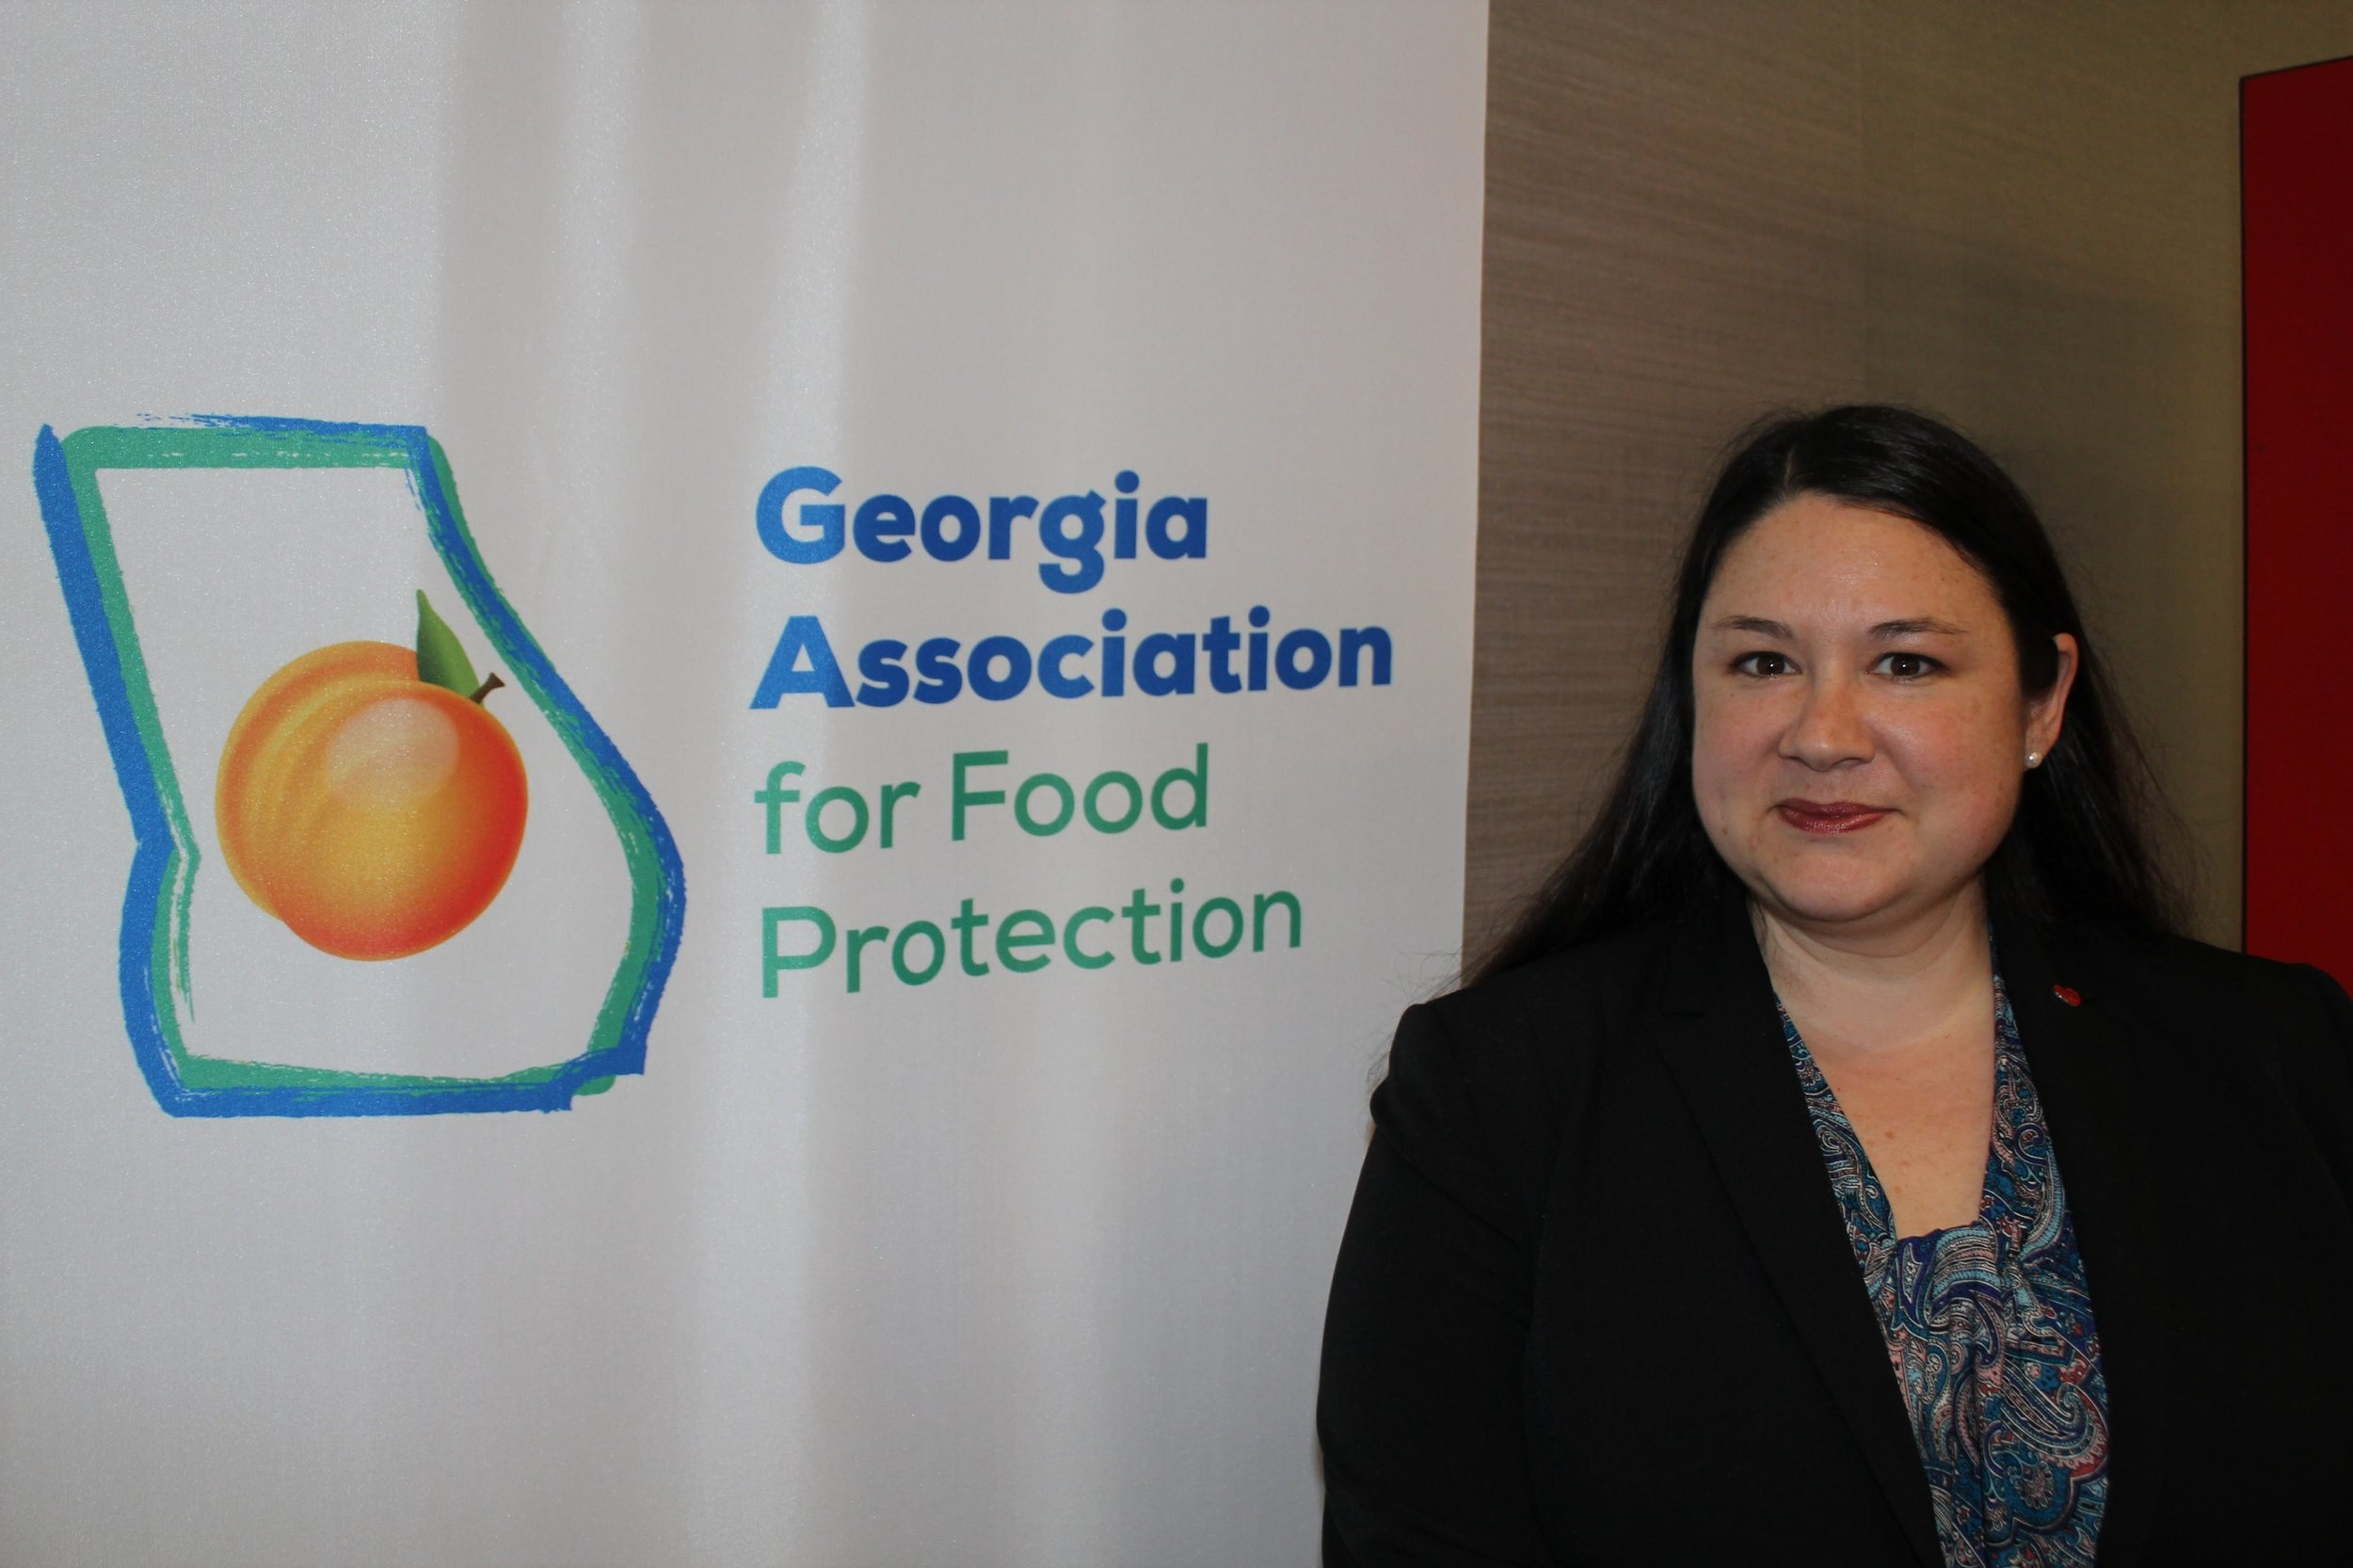 Wendy White, IAFP Delegate - Wendy White (Georgia Tech) is currently the Georgia Association for Food Protection's Secretary. Wendy, elected in 2018, currently co-chairs the Awards and Nominations Committee.Contact: wendywadewhite@gmail.com